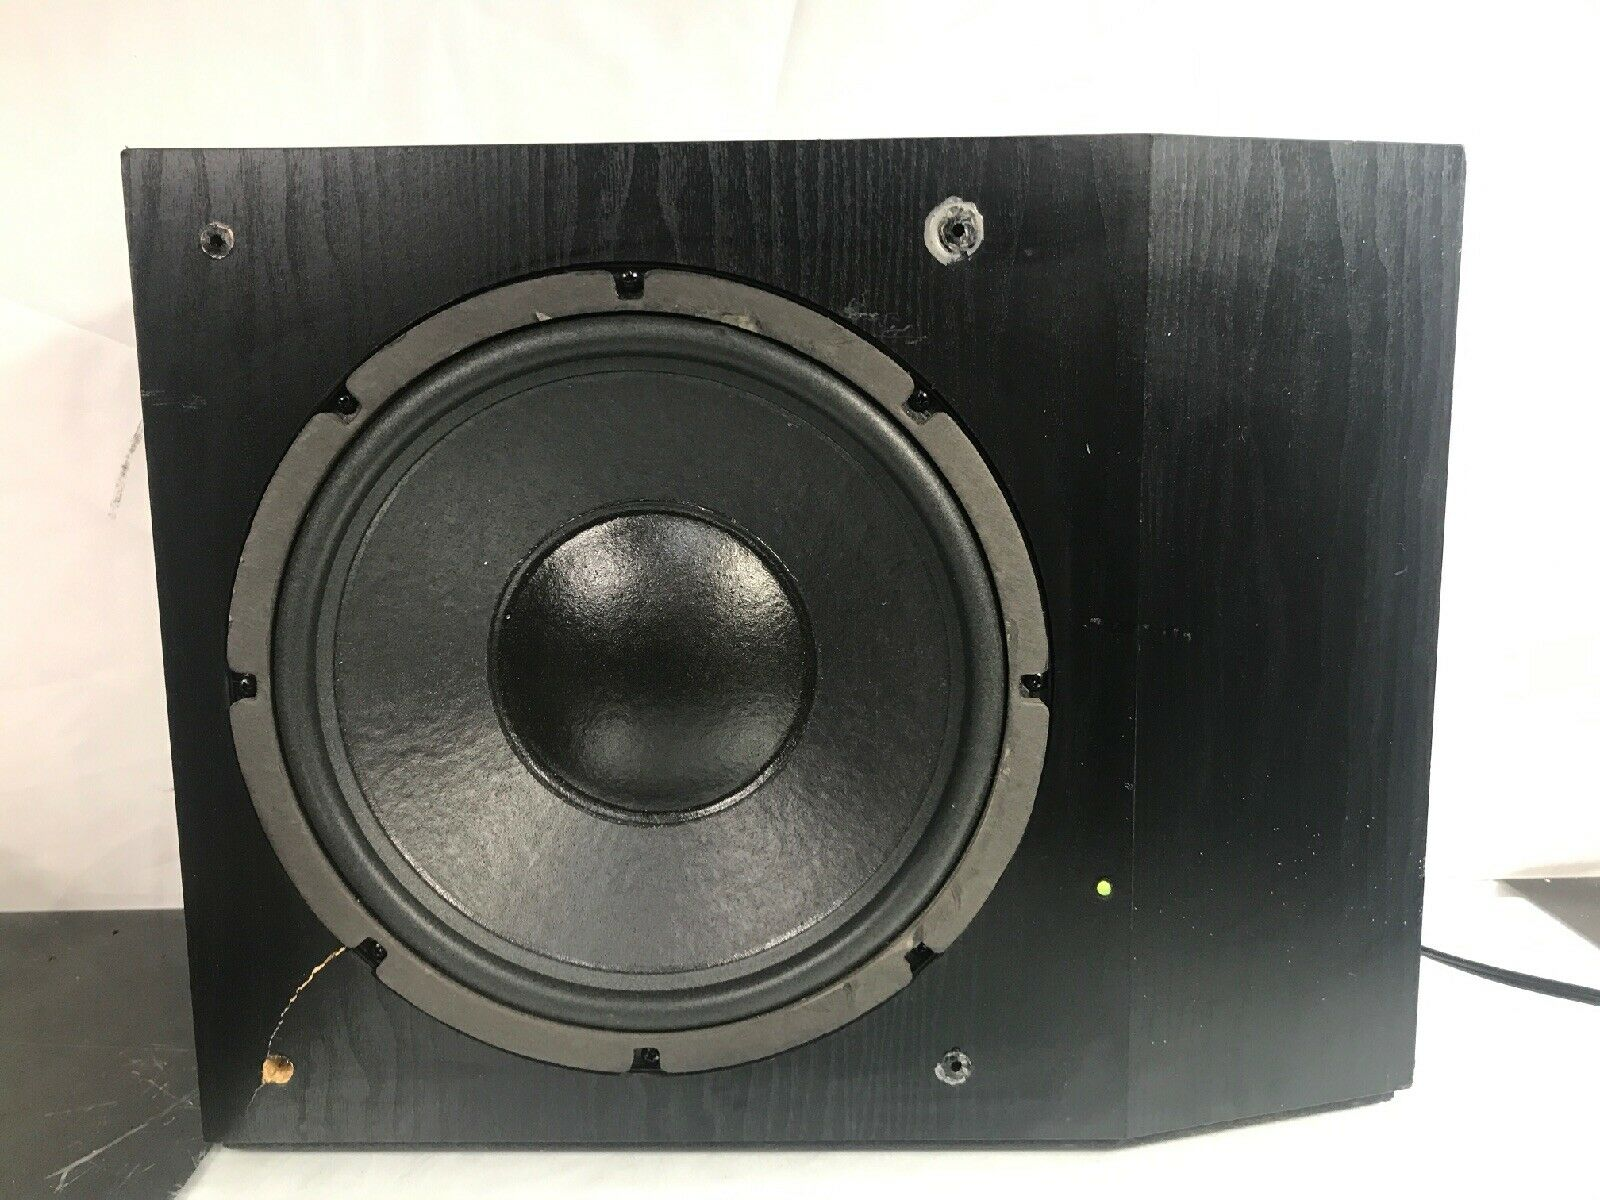 JBL PS120 Compact Powerot Subwoofer With Subwoofer Cable